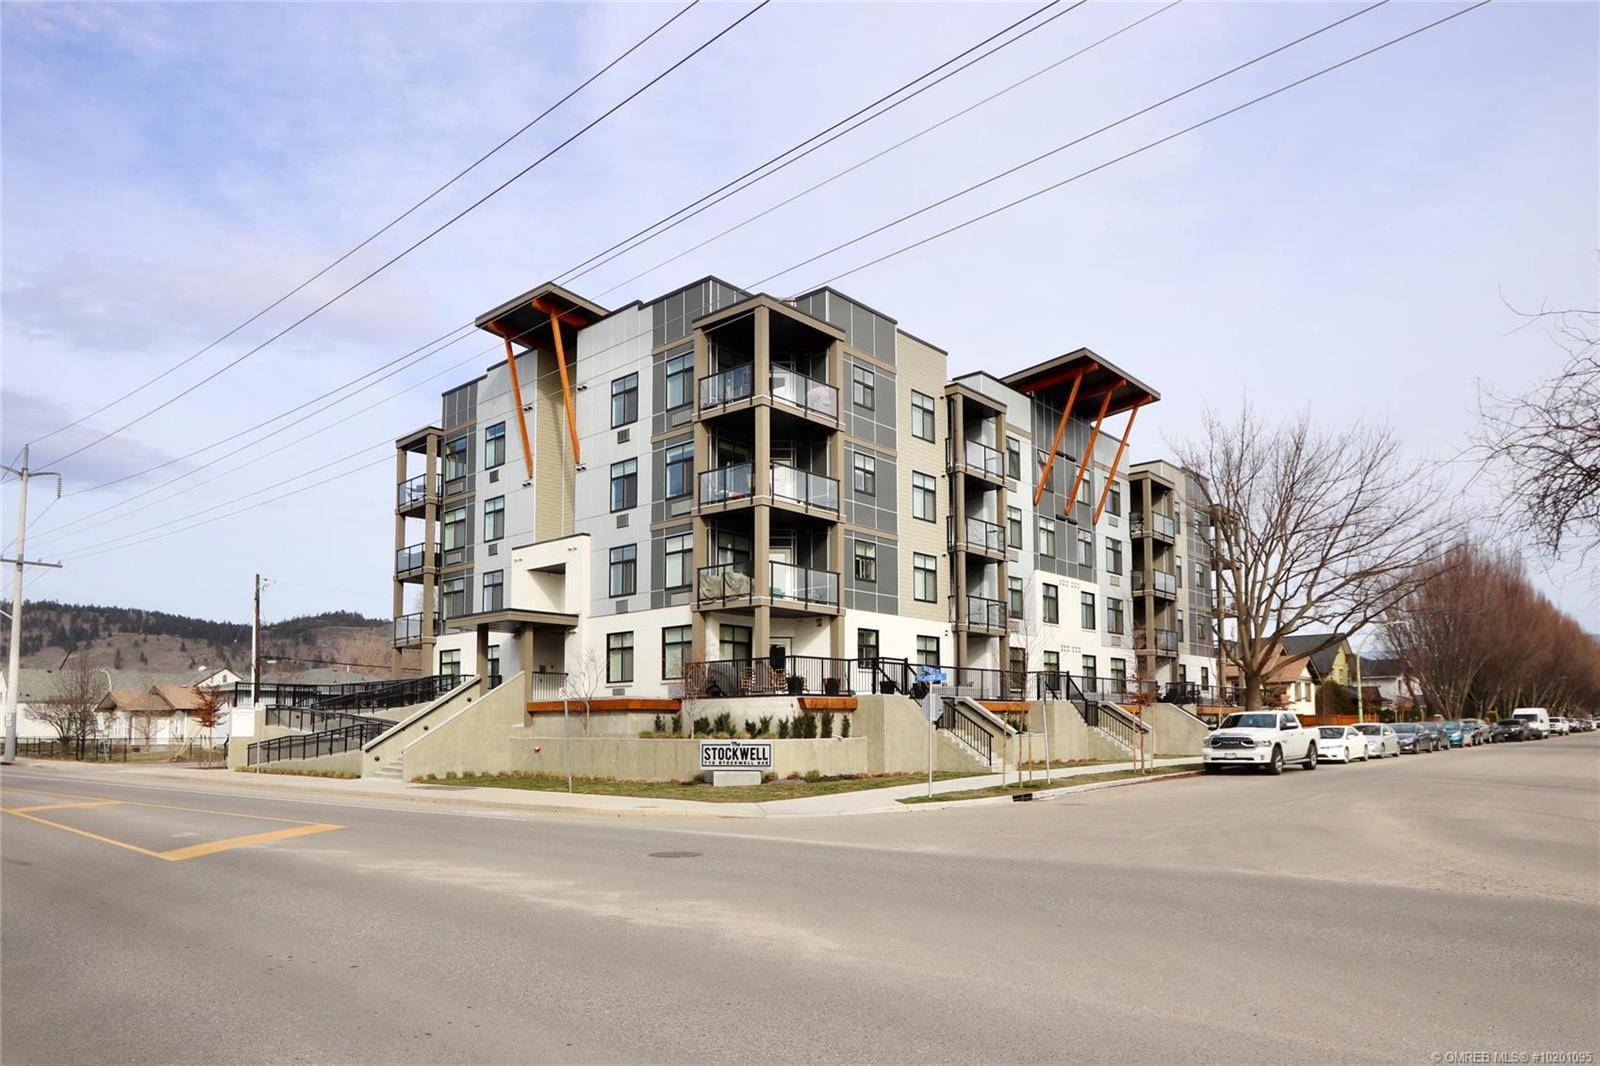 Condo for sale at 710 Stockwell Ave Unit 201 Kelowna British Columbia - MLS: 10201095